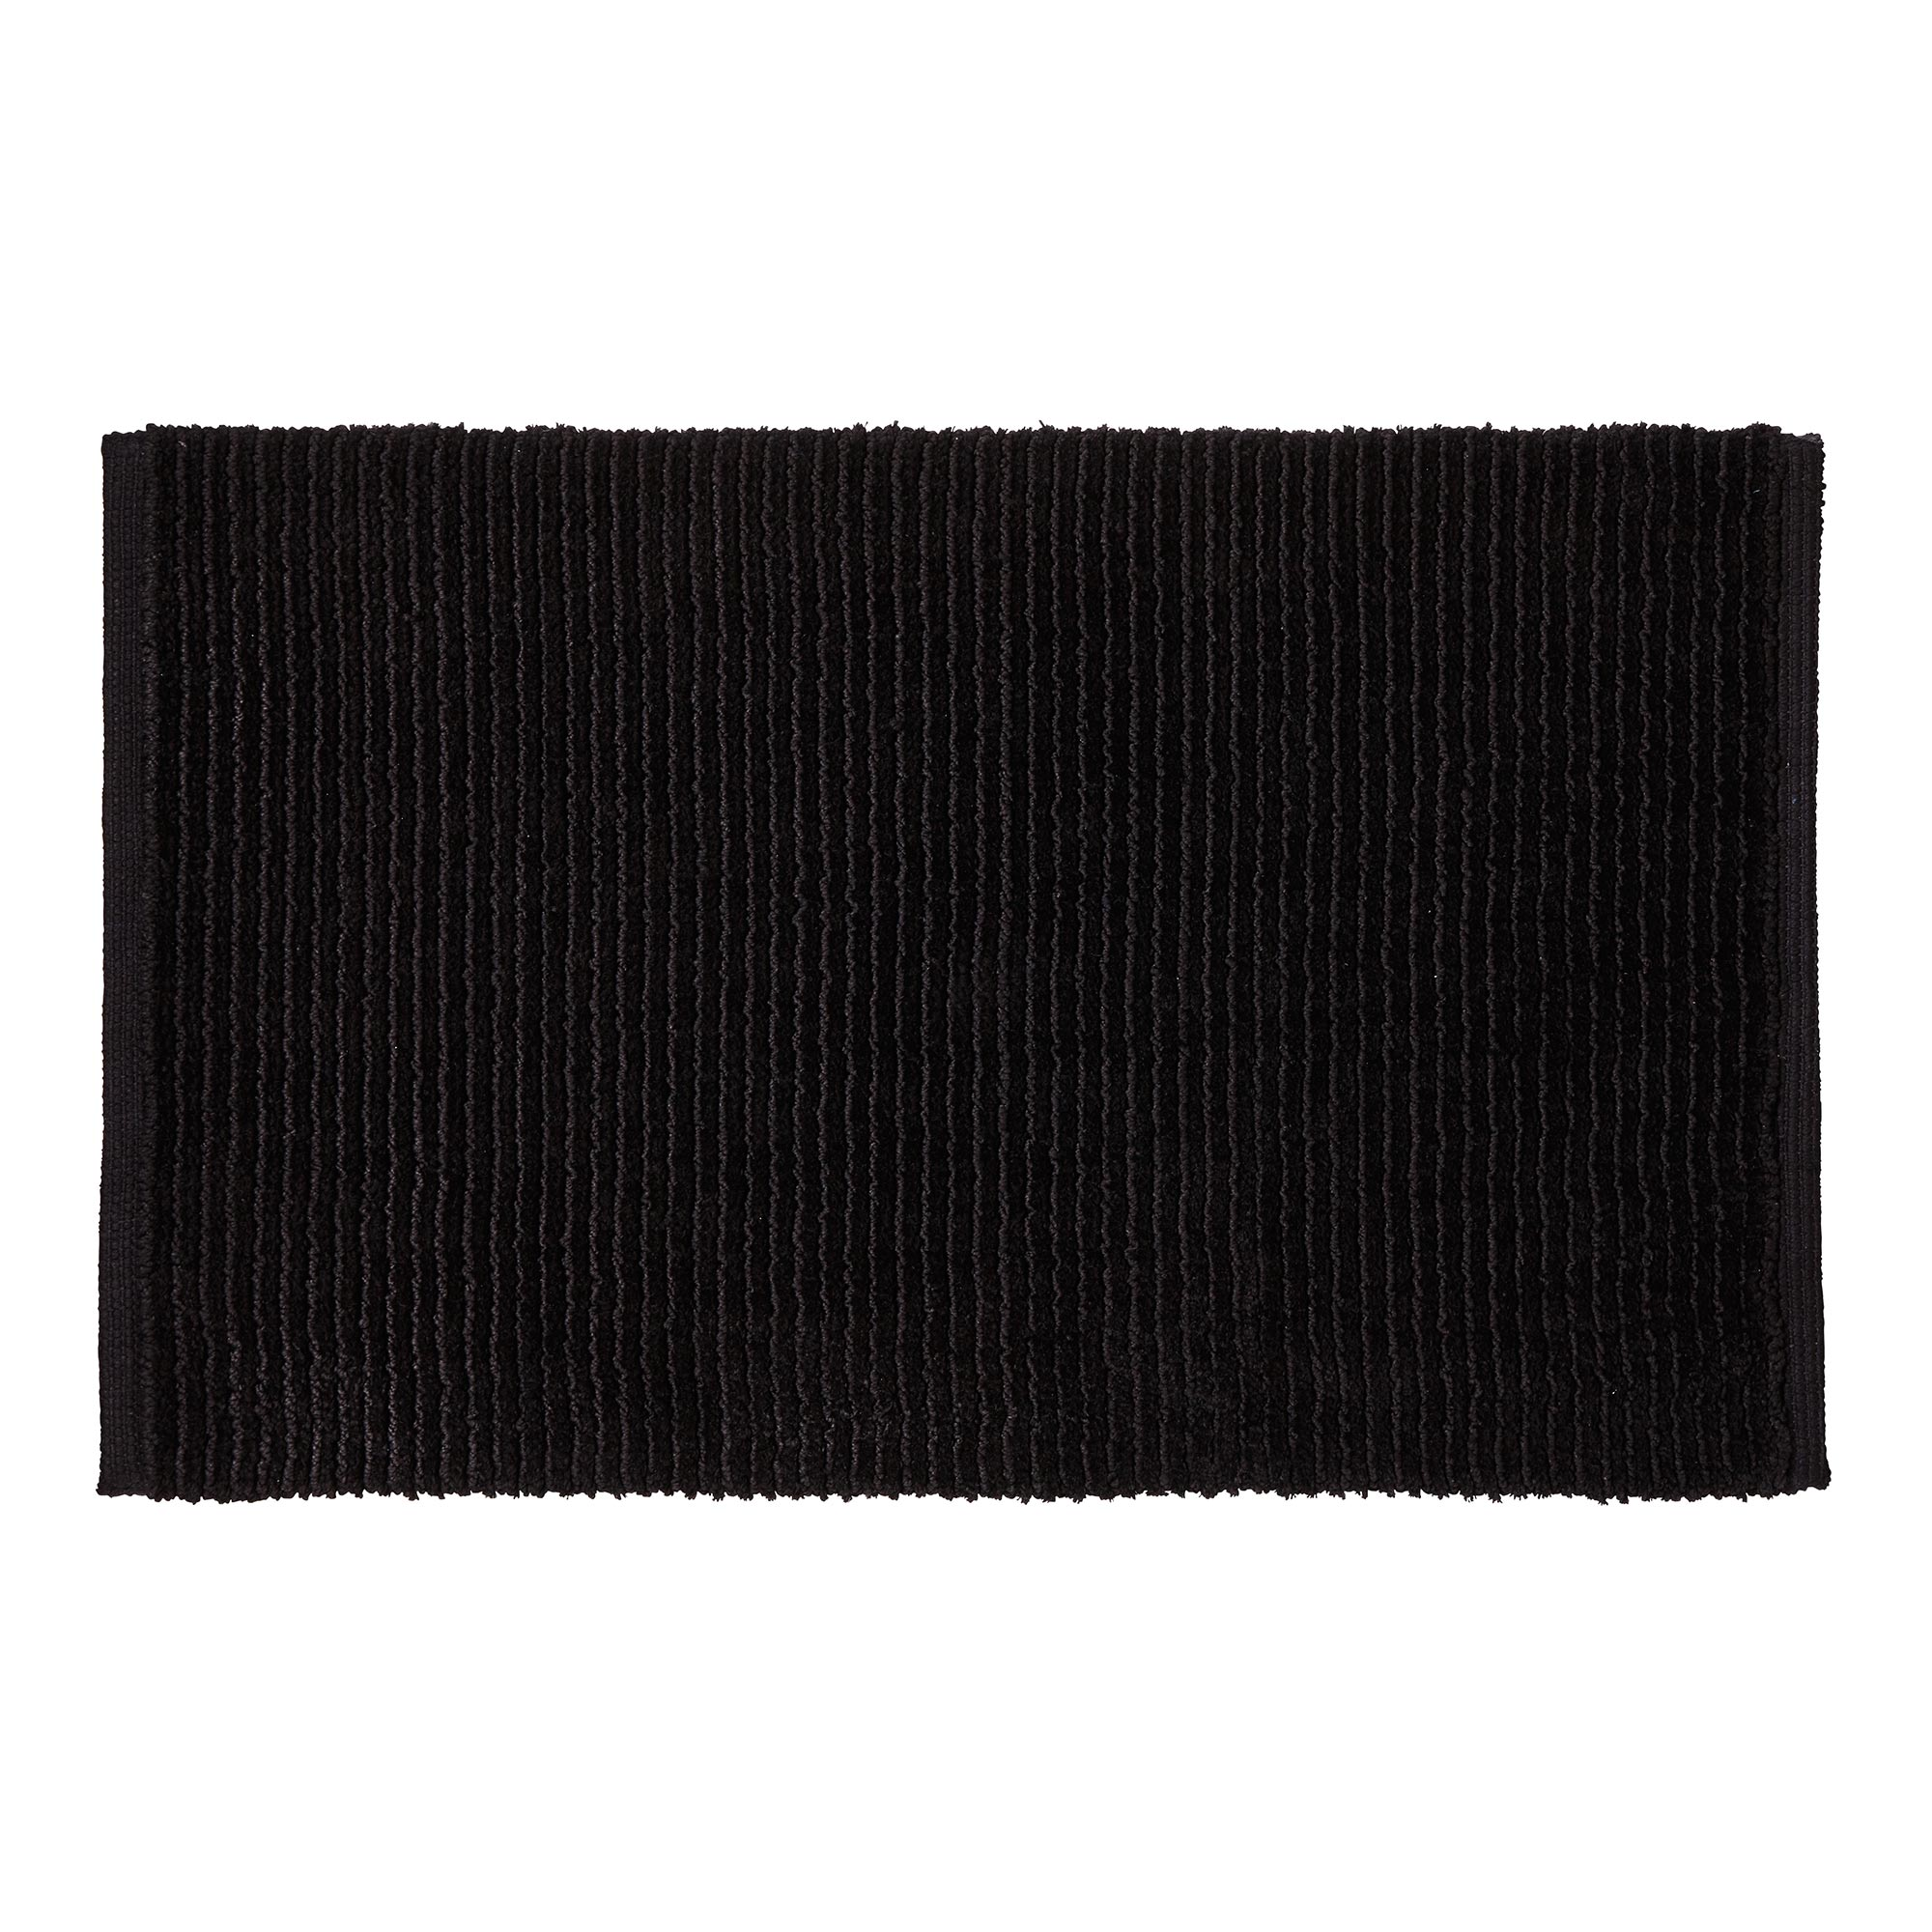 Photo of Regeneration bath mat black